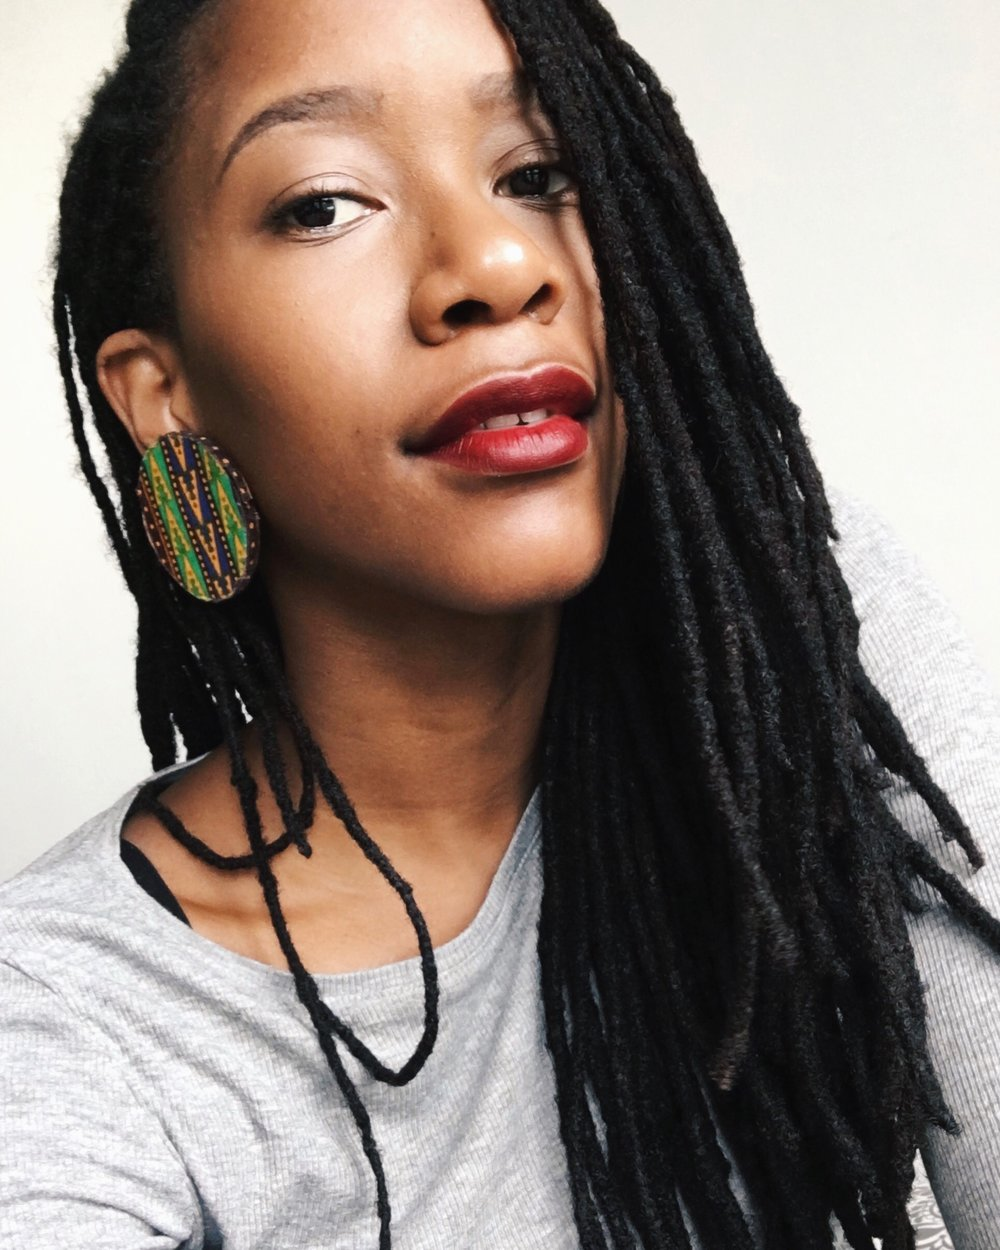 Five years on, long locs and big earrings in Singapore!